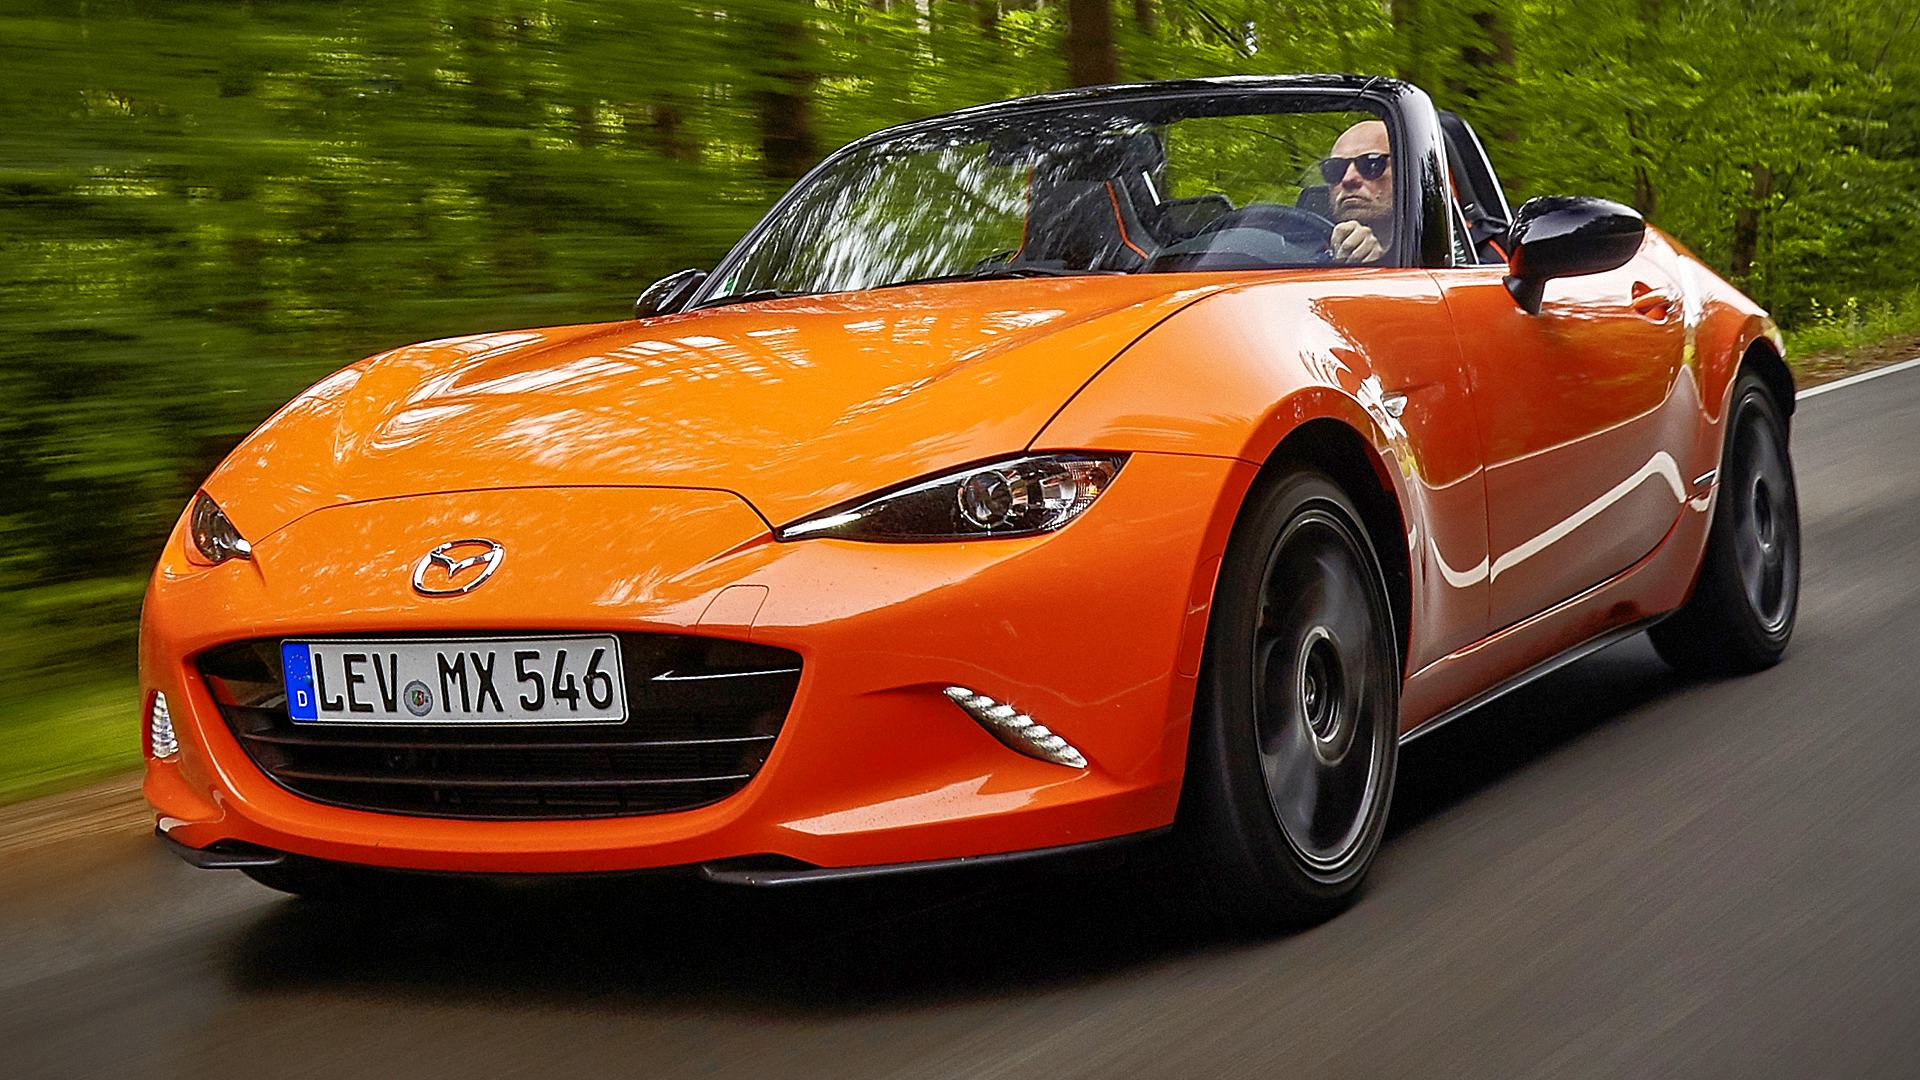 2020 Mazda MX-5 Miata 30th Anniversary Images Photos